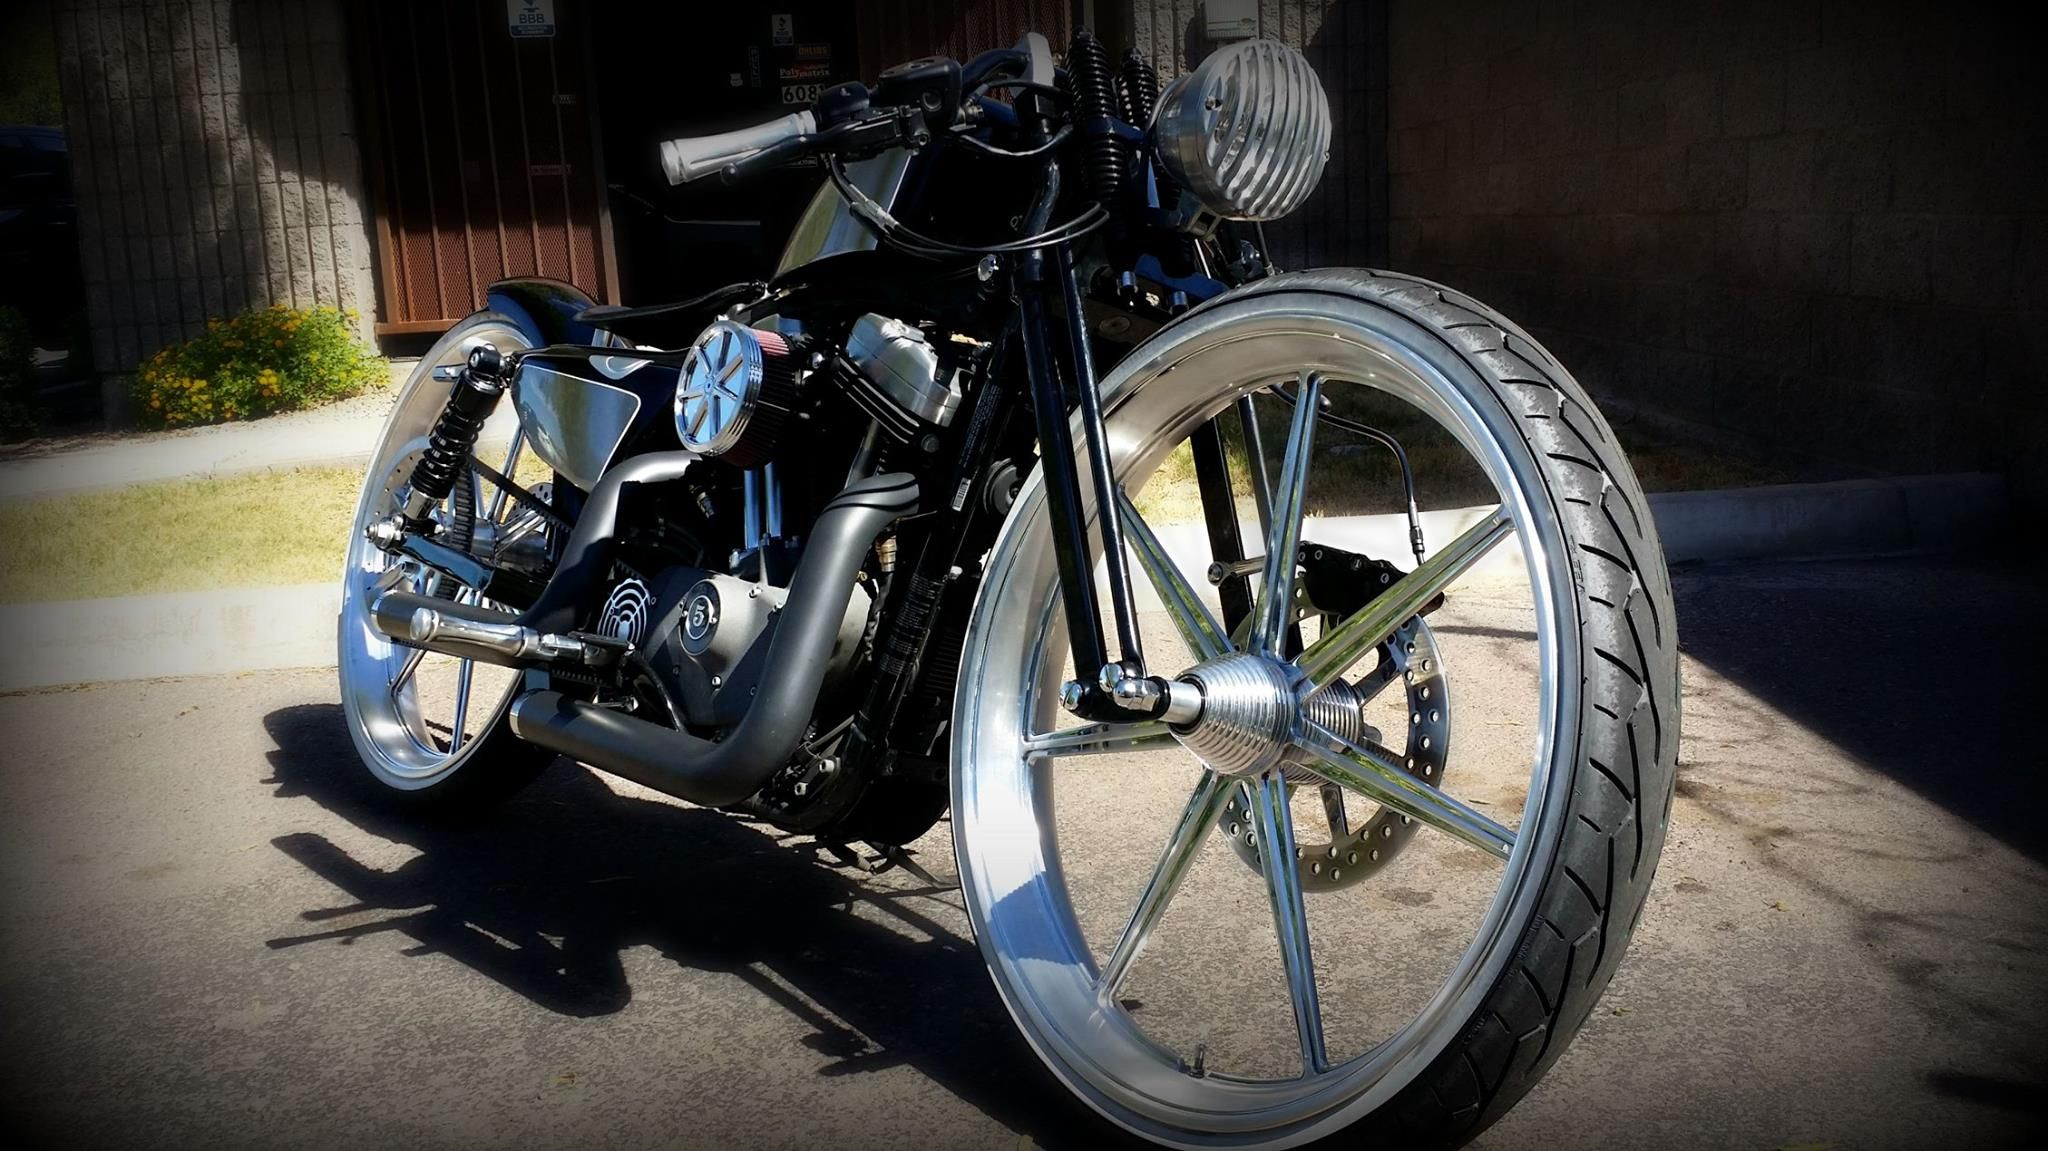 One of our latest creations!! A Harley Sportster with our